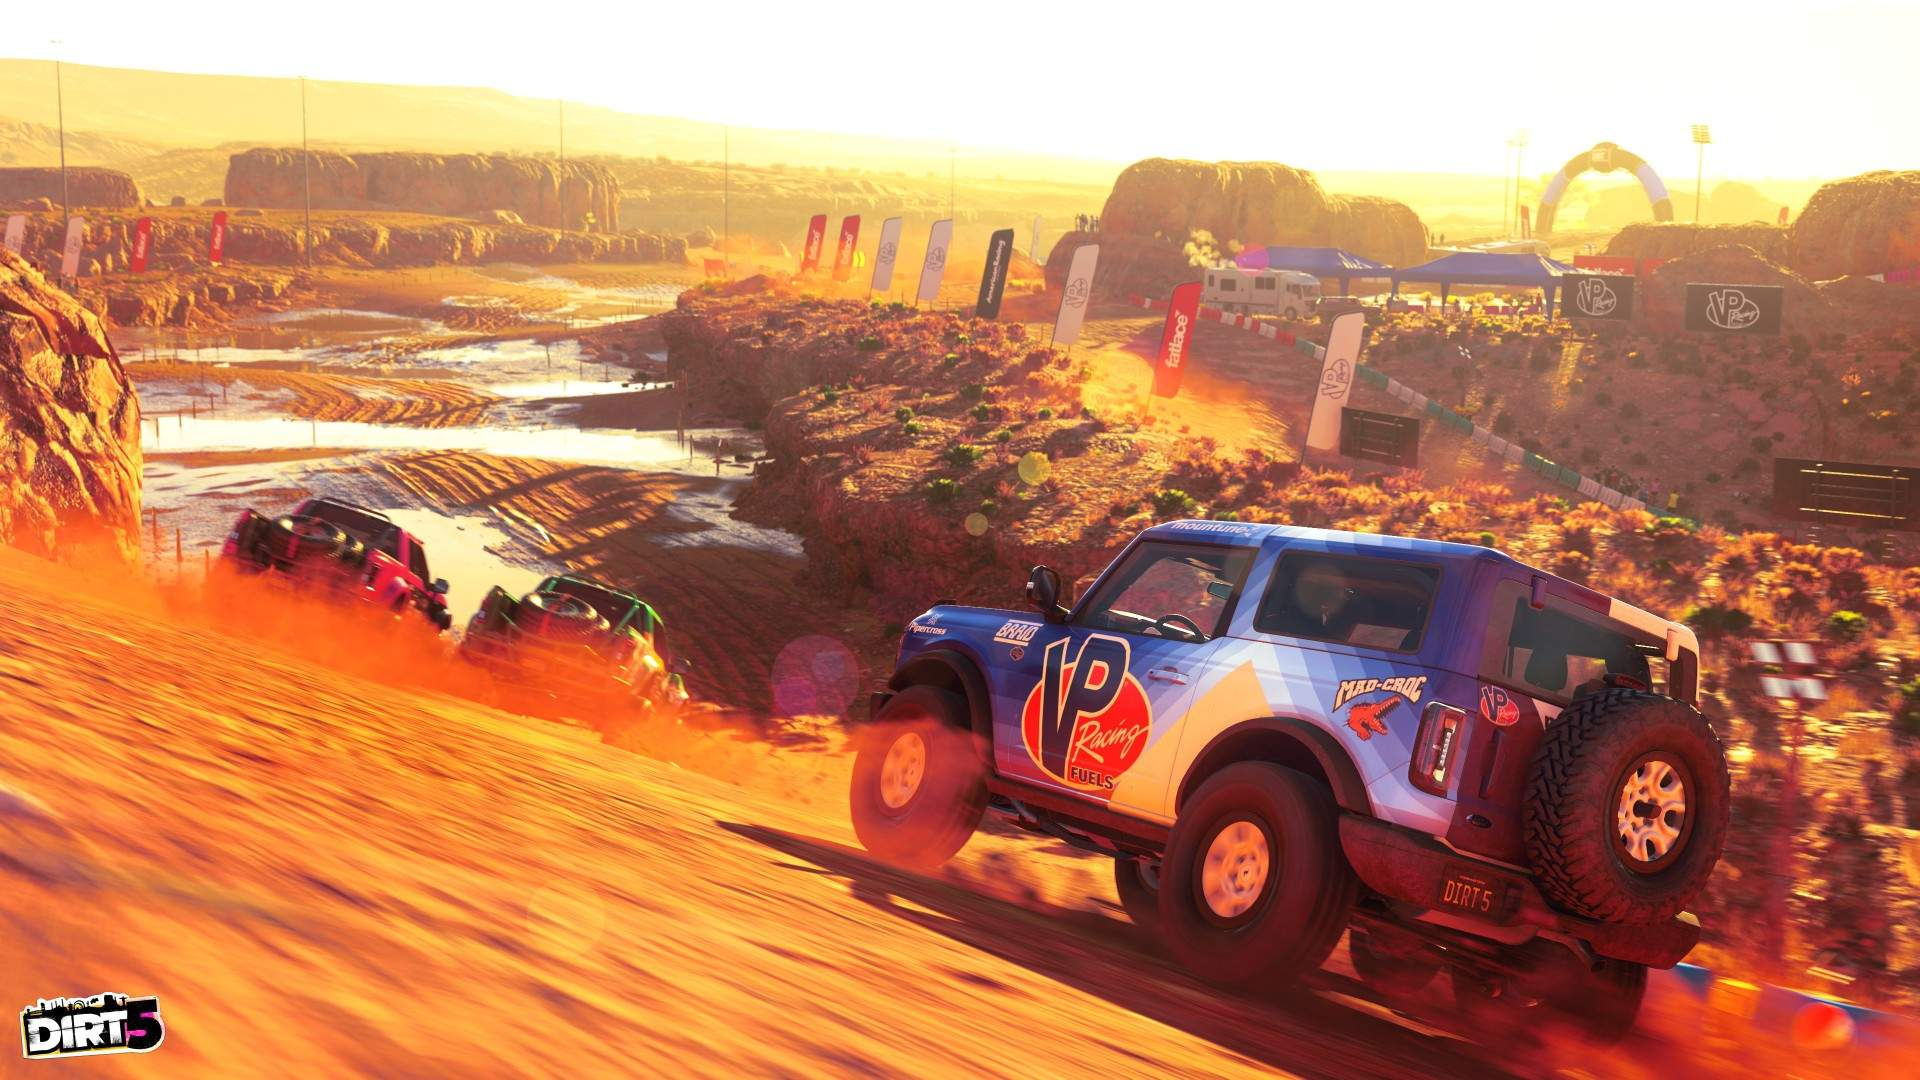 Dirt 5 Drops the New Ford Bronco into the Off-Road Action in Latest Content Pack 6